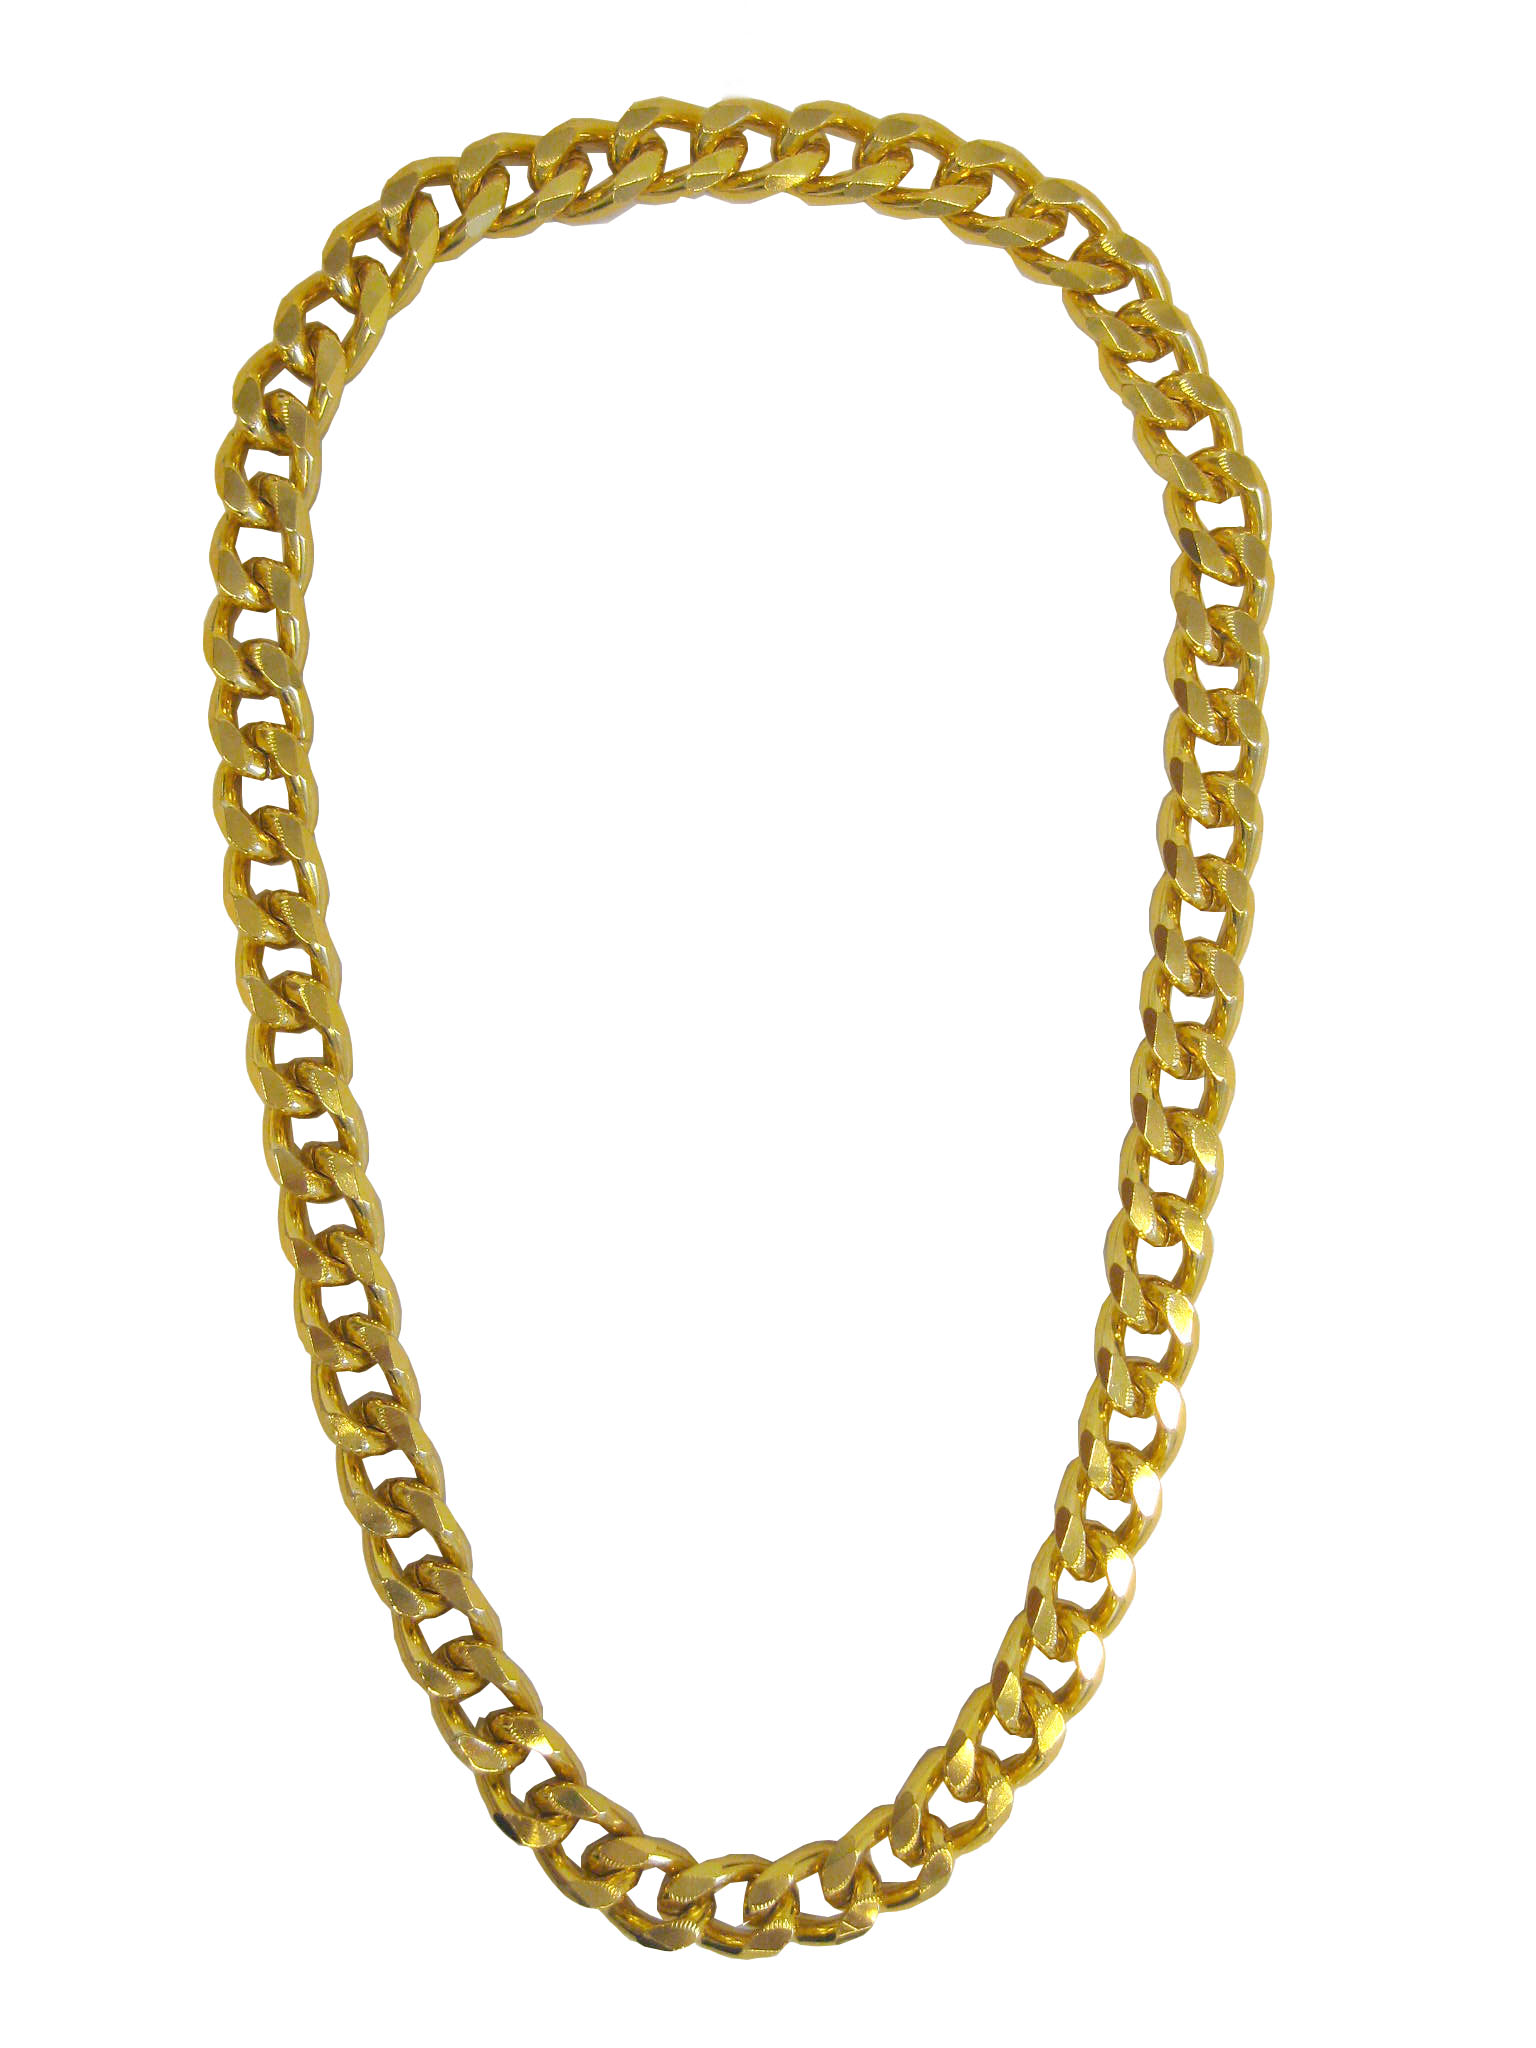 Free Gangster Gold Chain Png, Download Free Clip Art, Free.